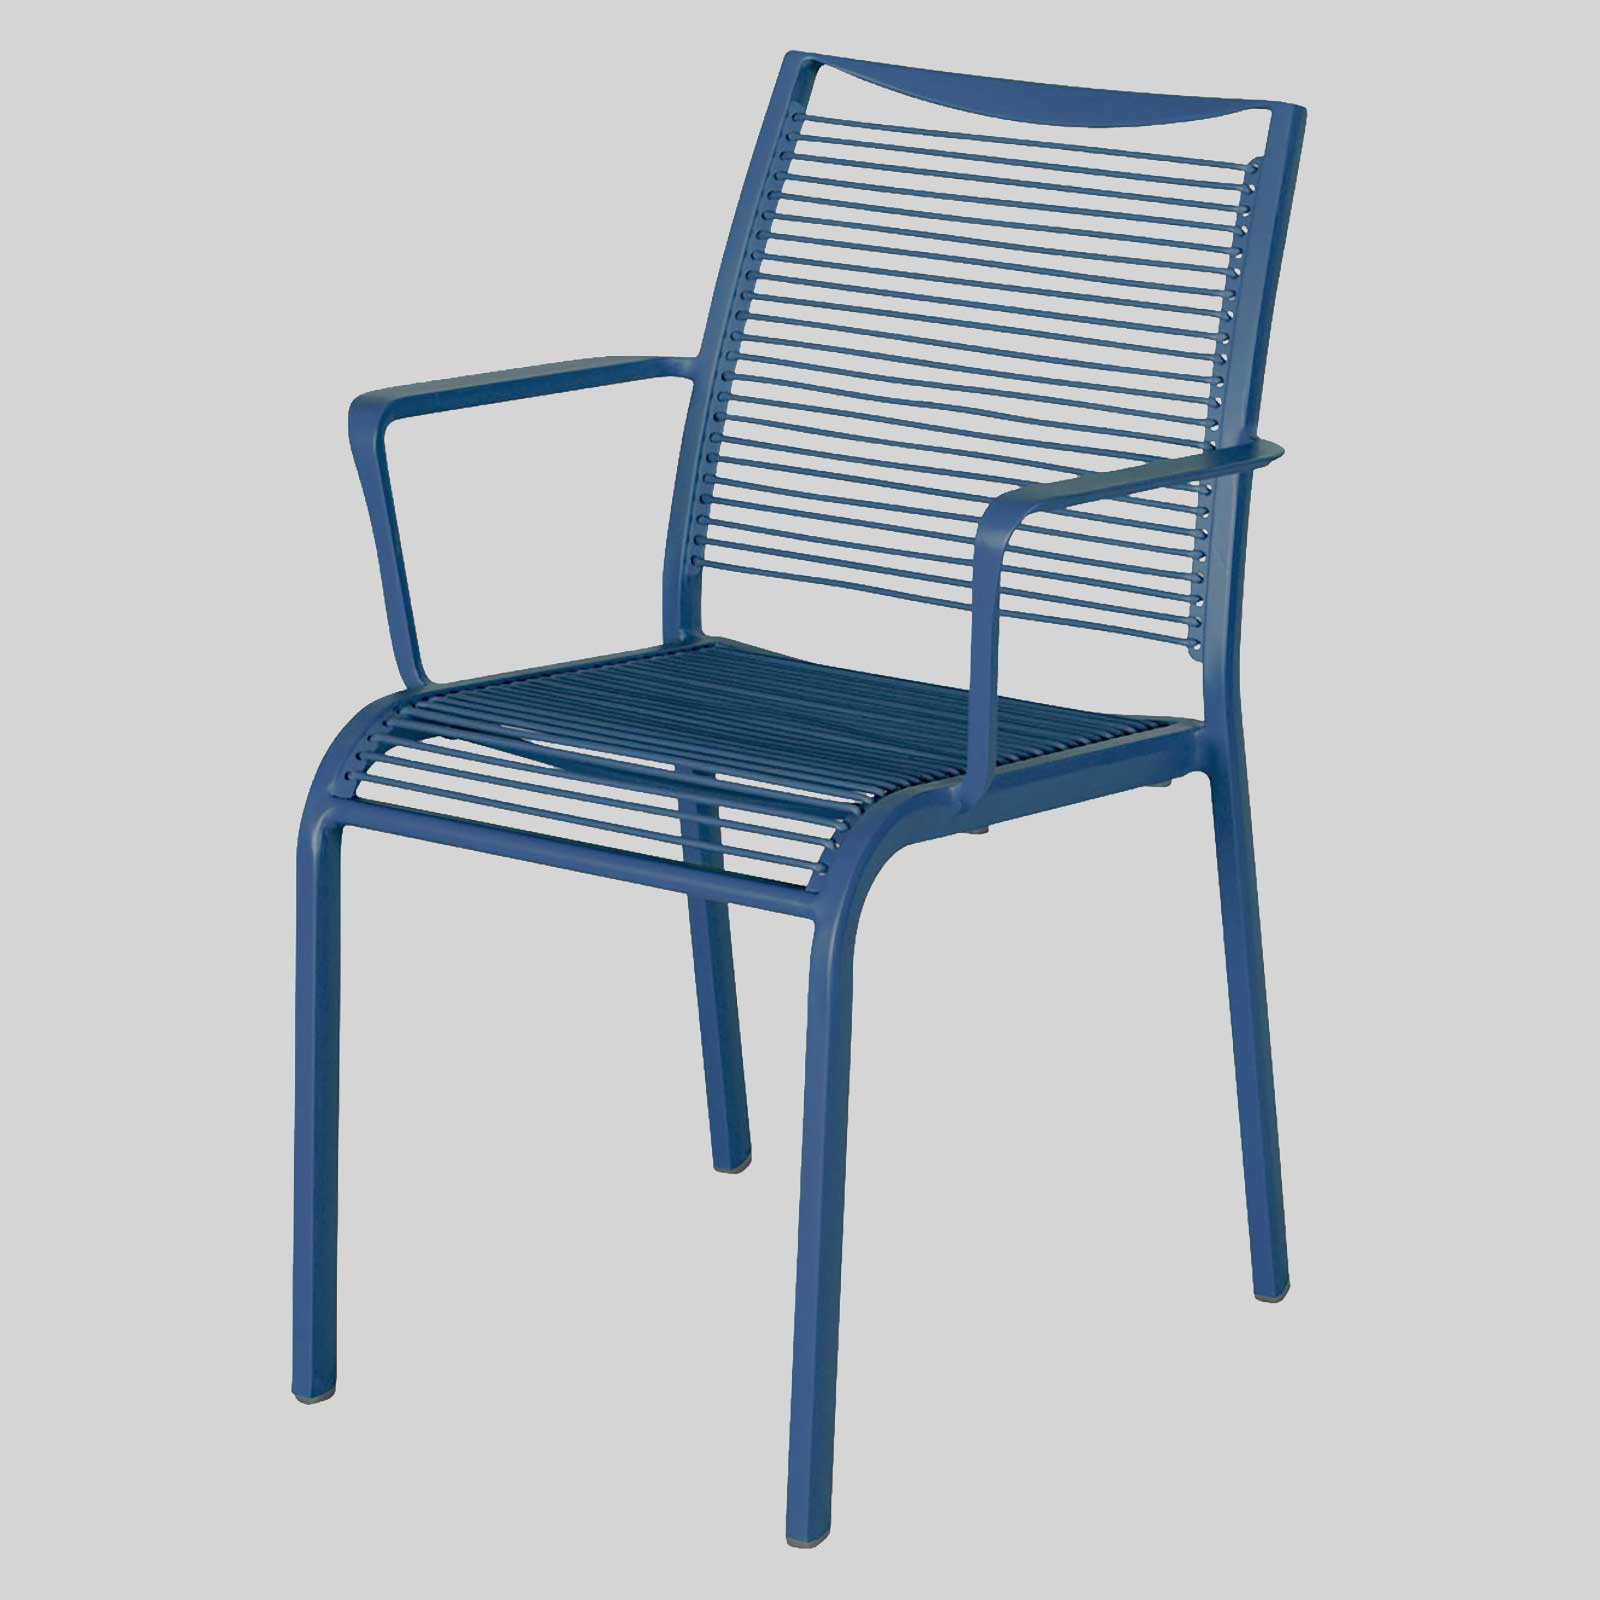 Outdoor cafe chairs - Waverly Outdoor Cafe Chairs With Arms Blue